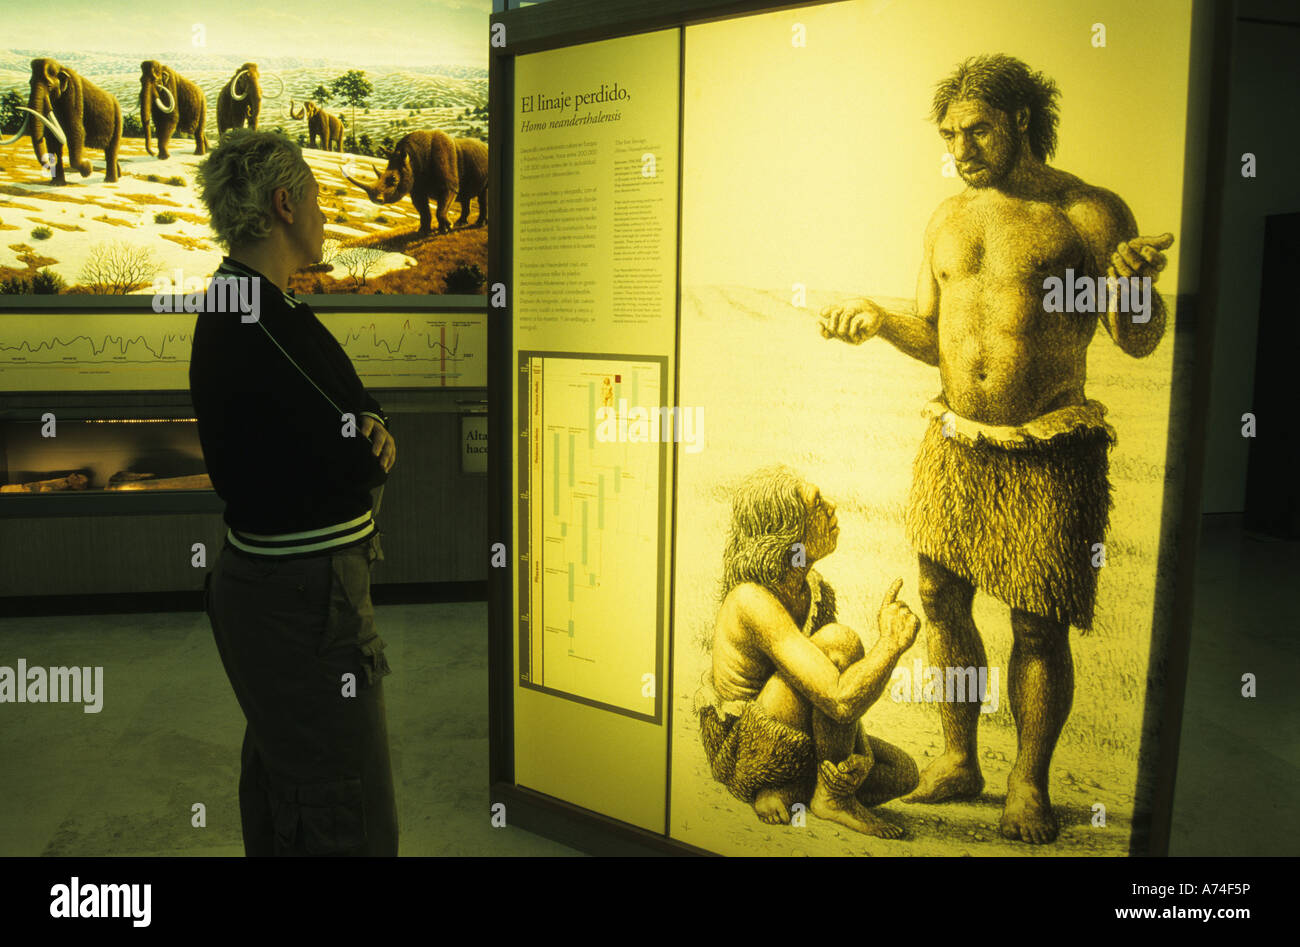 Display of human evolution ALTAMIRA NEO CAVE MUSEUM Santillana del Mar Cantabria Spain - Stock Image